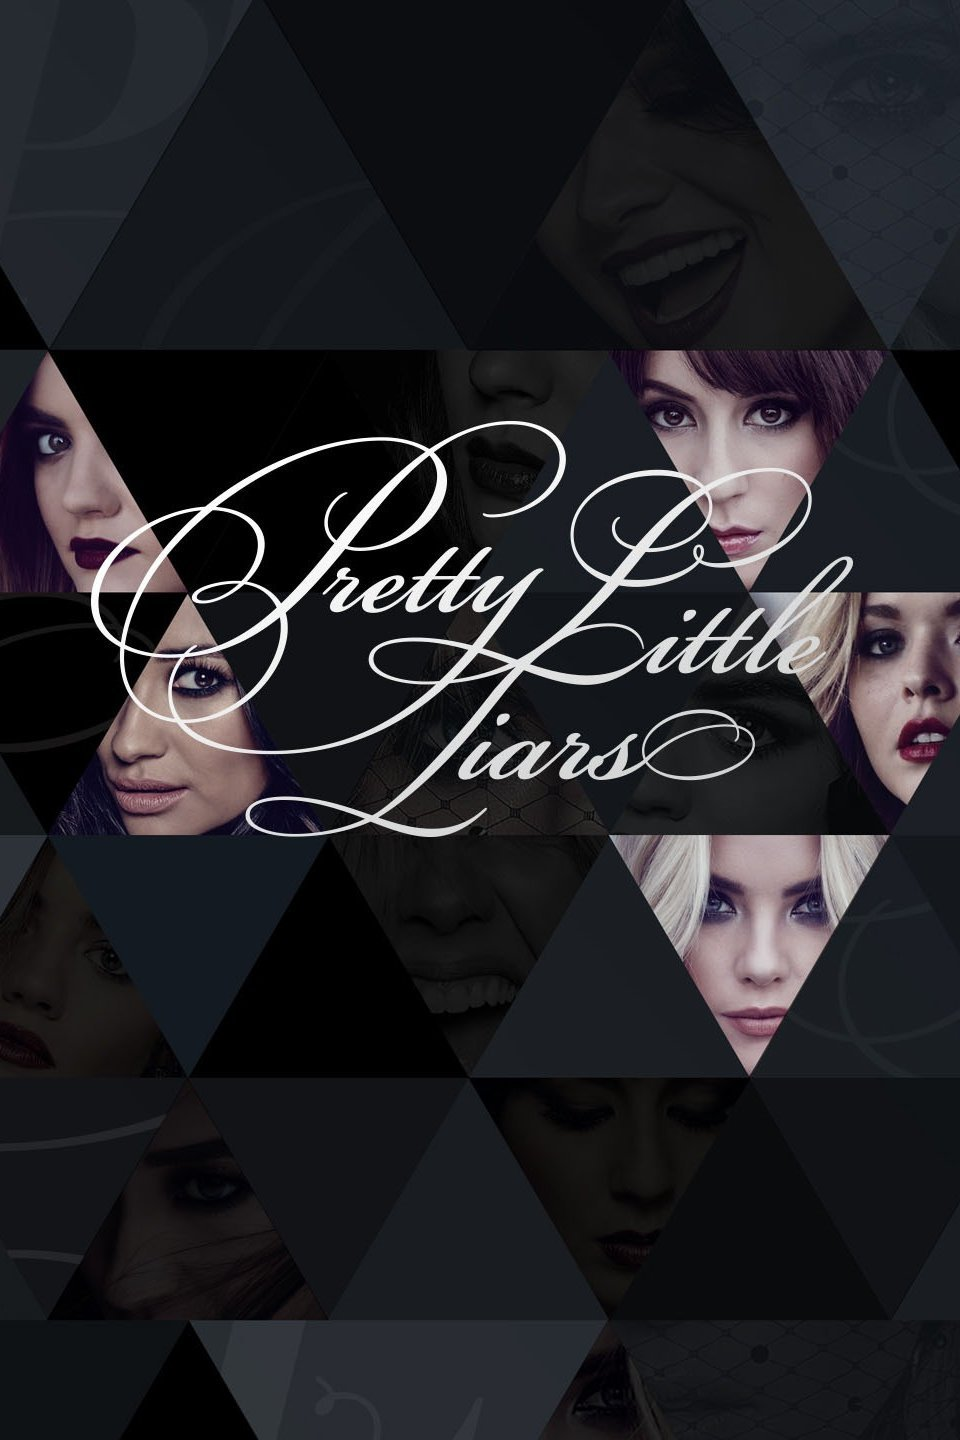 Pretty Little Liars Season 1 Episode 20 Download WebRip 480p & 720p